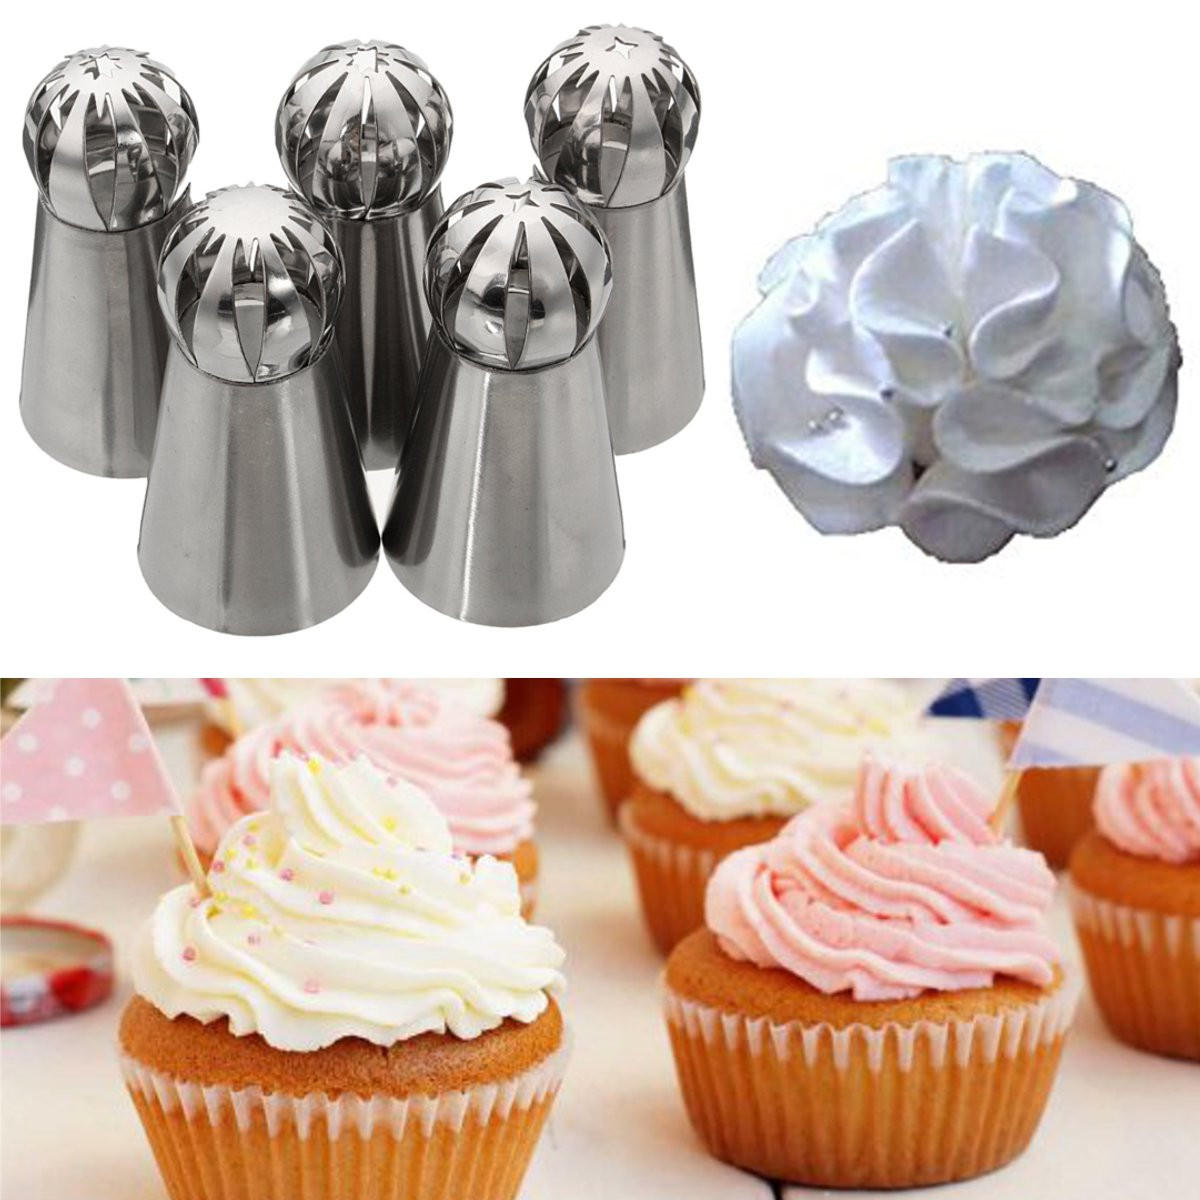 5Pcs Stainless Steel Nozzles Dual Color Lcing Piping Bag Cake Tool Cake Decoration Converter - 4